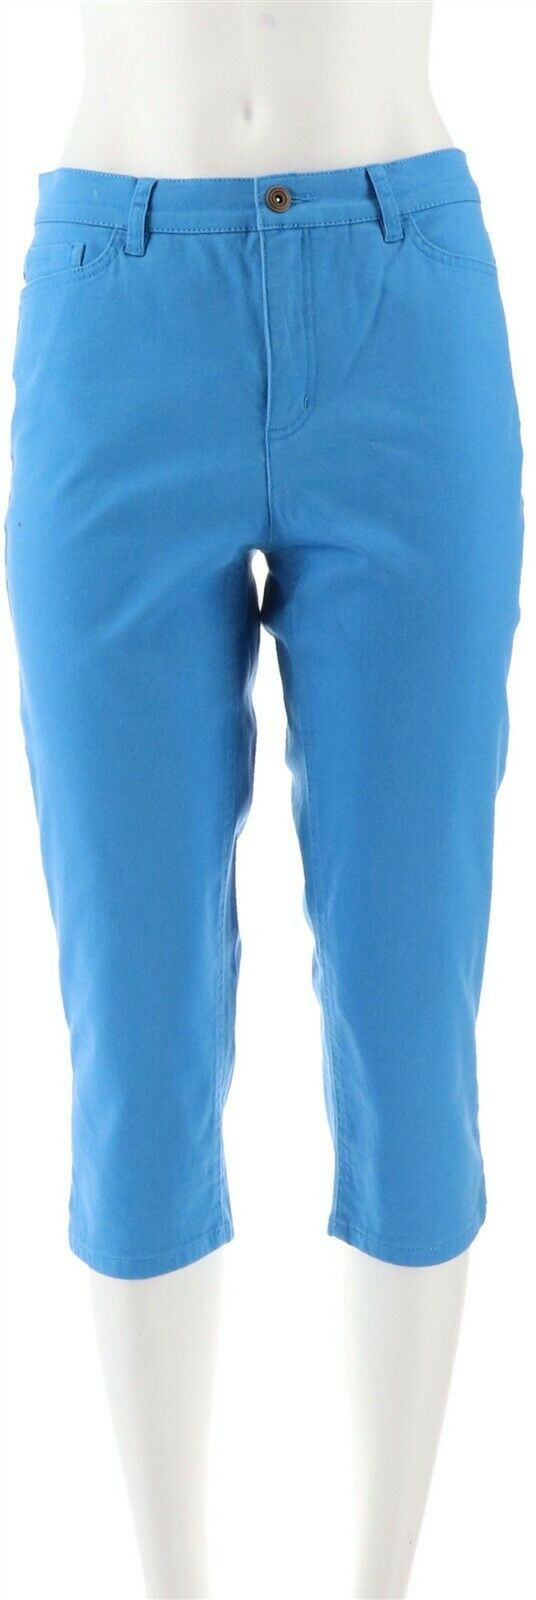 Primary image for Denim & Co How Modern Capri Pant Deep MarineBlue 4 NEW A291663